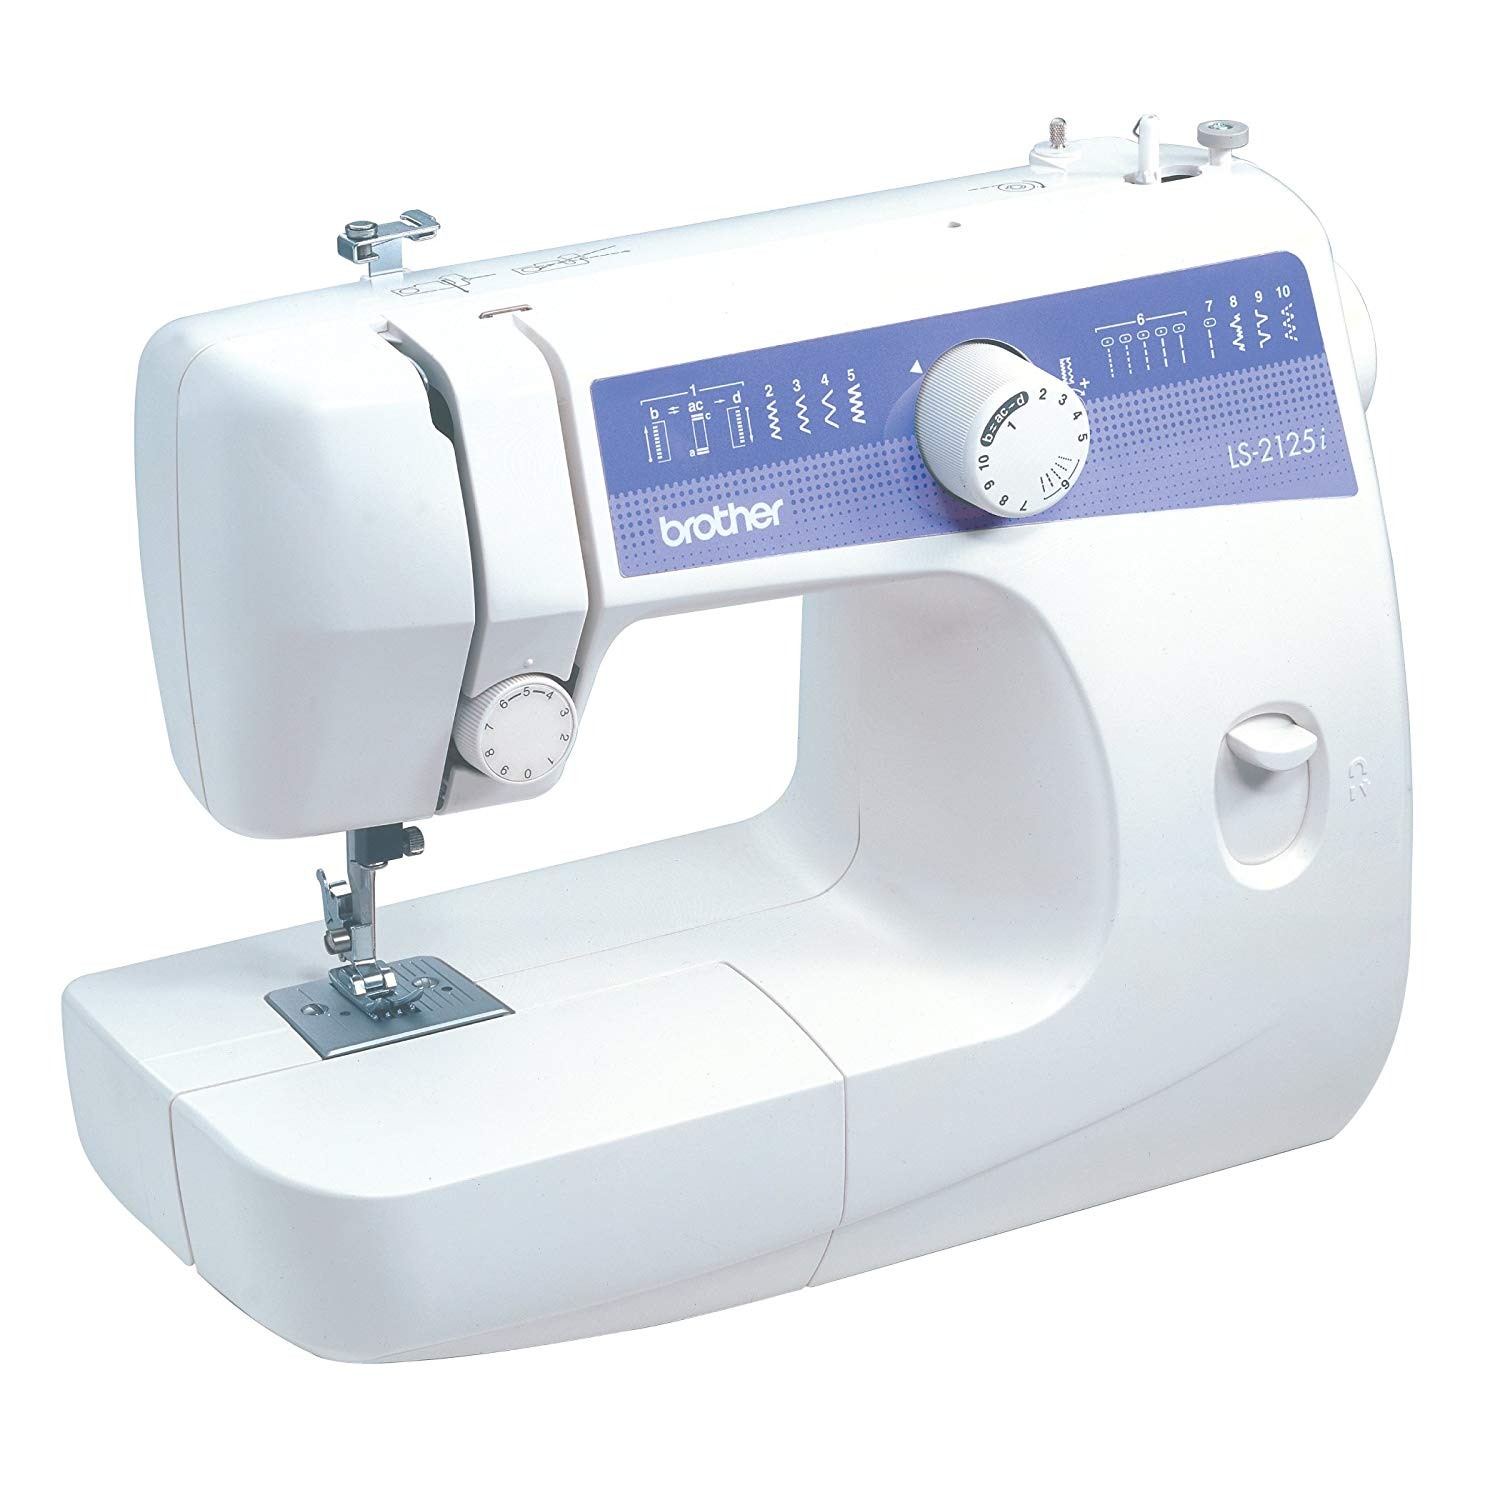 Brother LS2125i small sewing machine